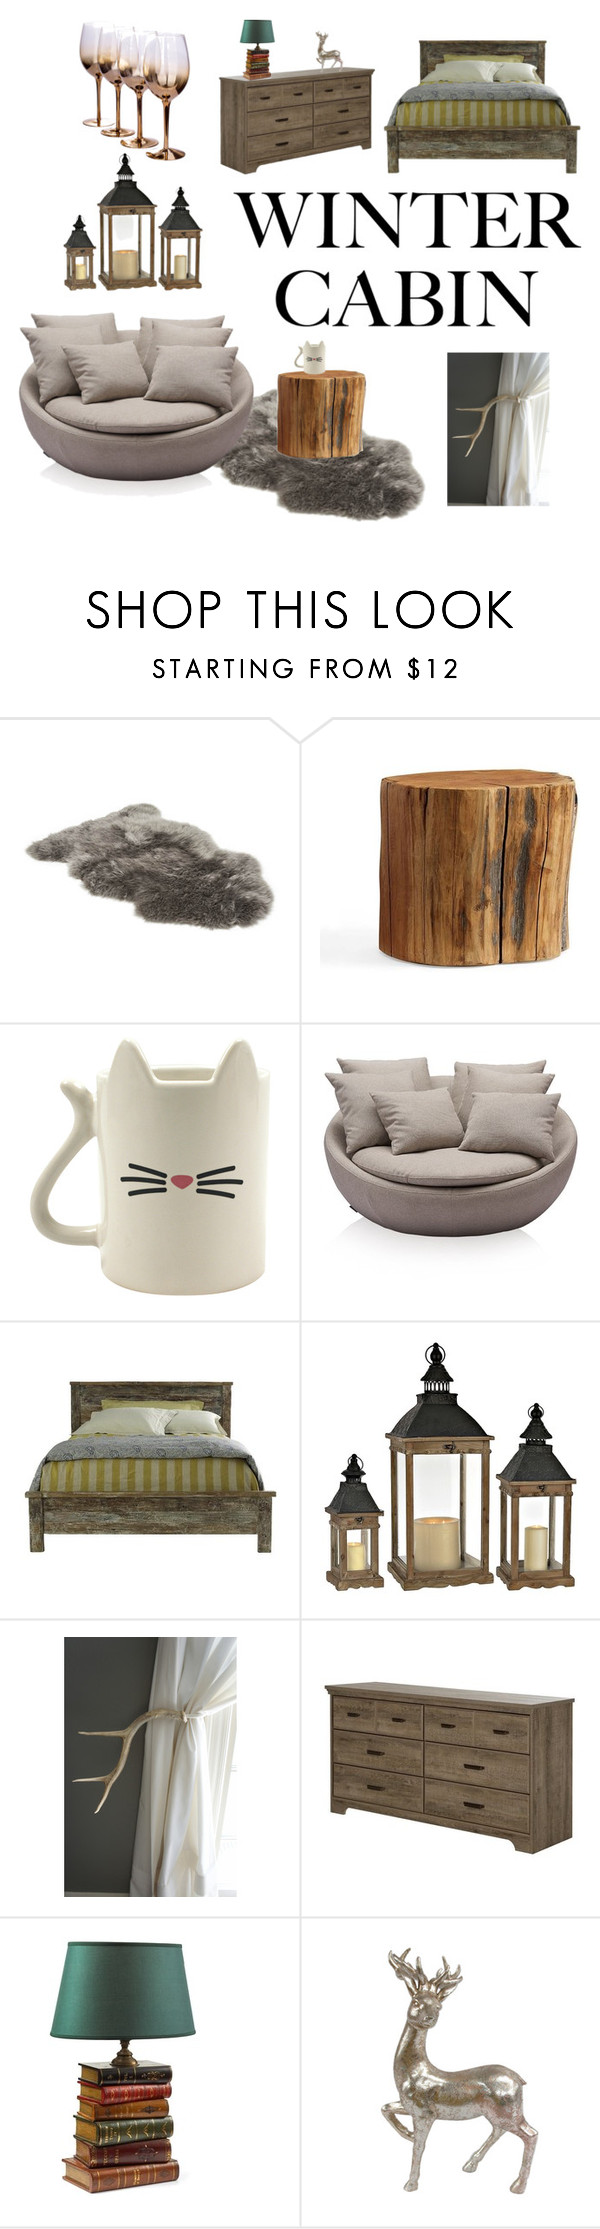 """Walking in a Winter Wonderland"" by ncolasante ❤ liked on Polyvore featuring interior, interiors, interior design, home, home decor, interior decorating, UGG, Pottery Barn, South Shore and cabinstyle"